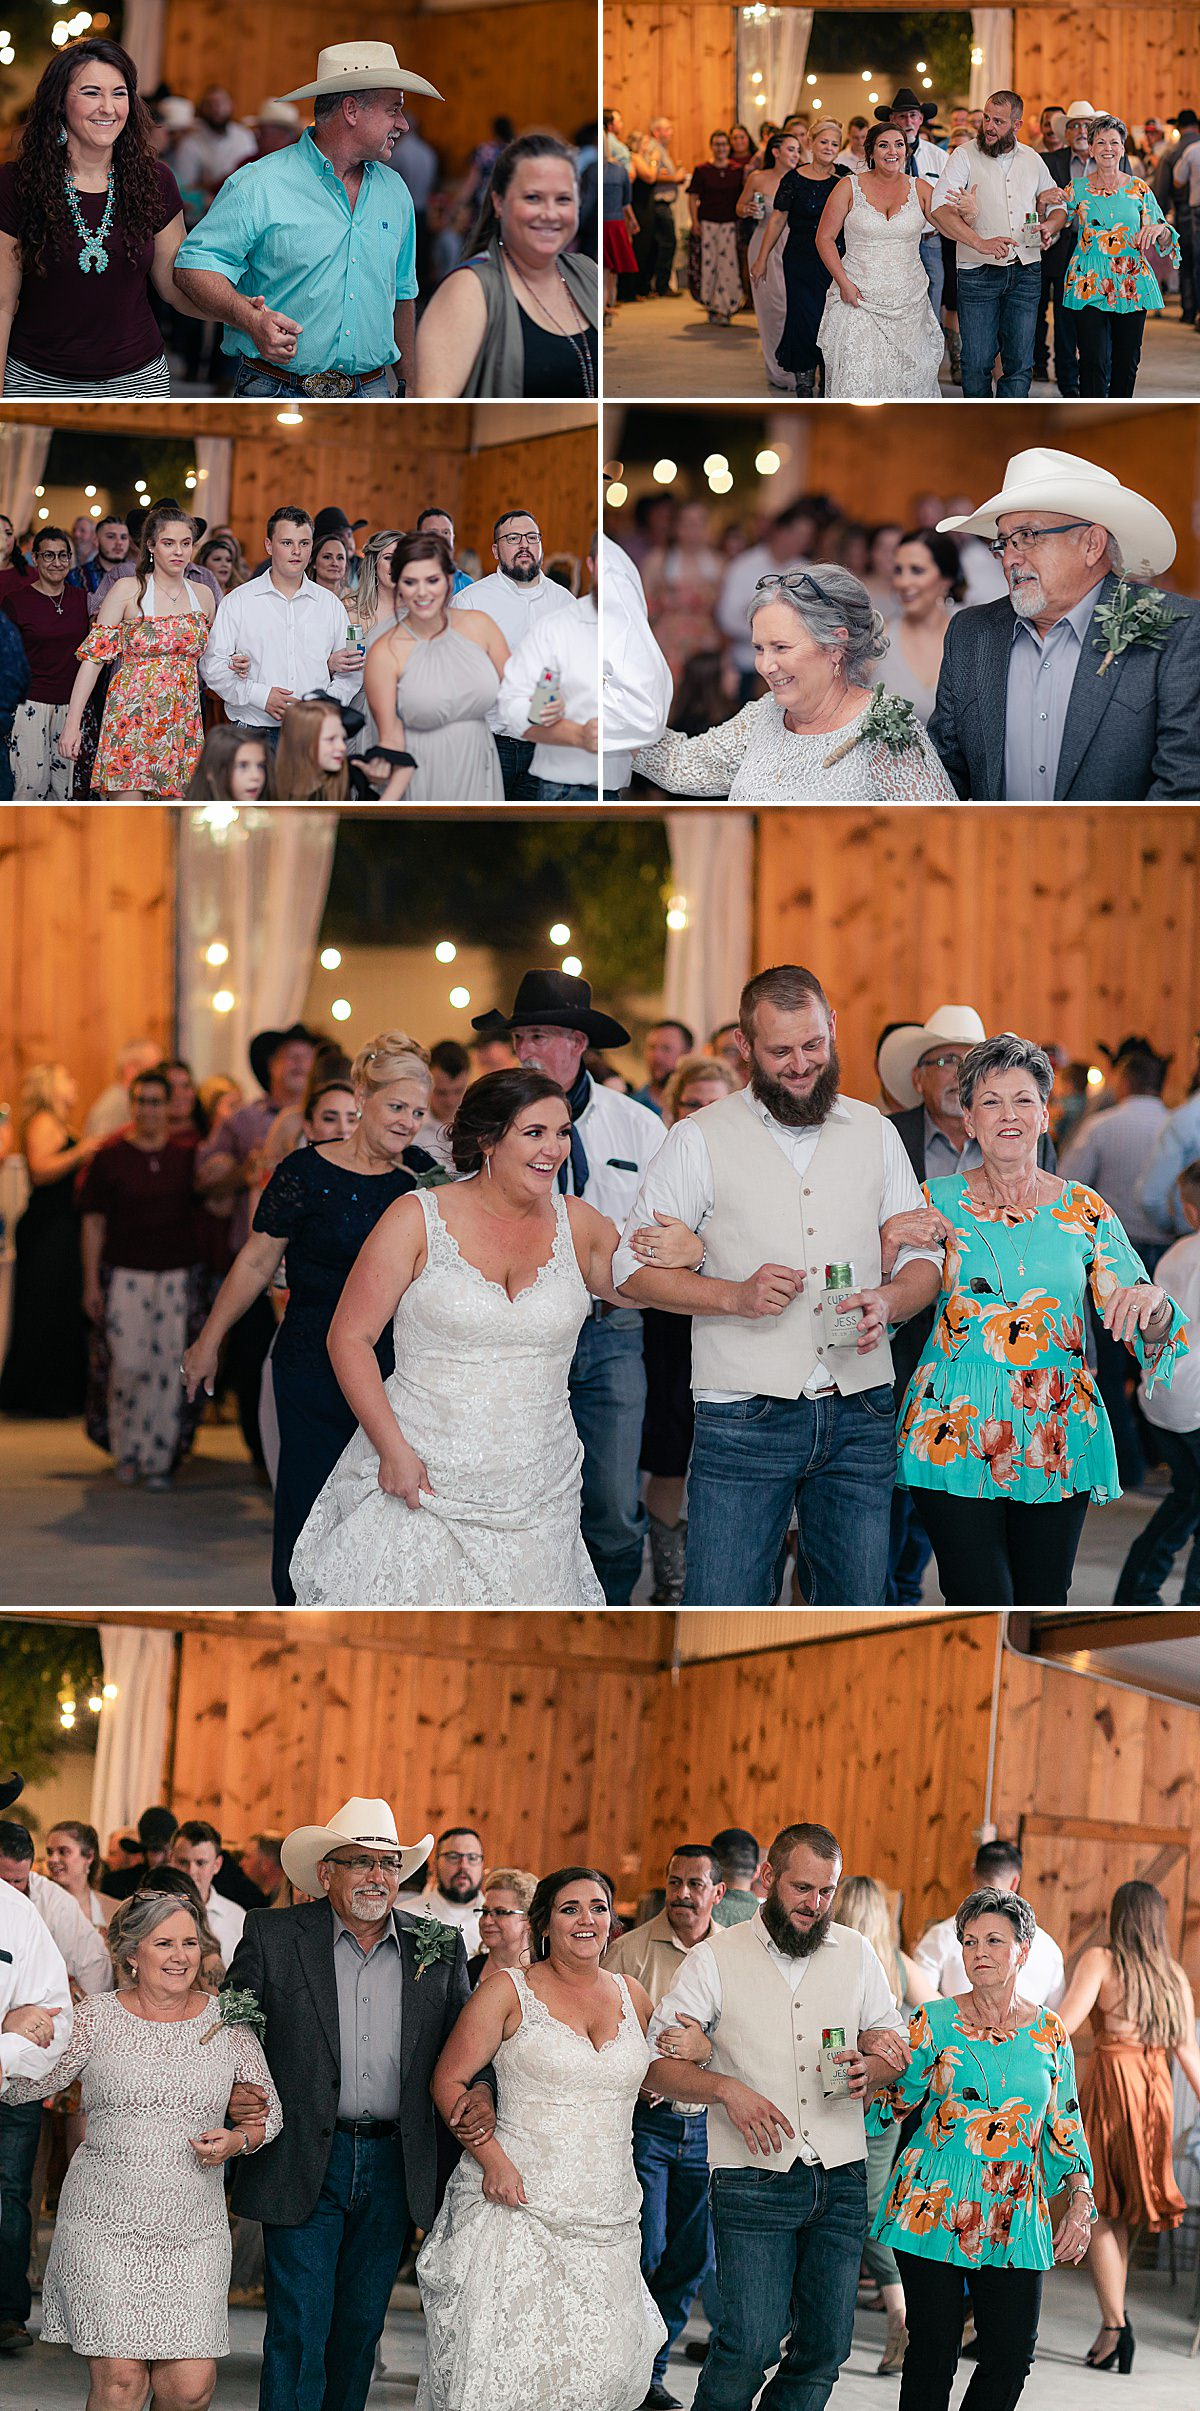 Rustic-Texas-Wedding-Hollow-Creek-Ranch-Carly-Barton-Photography_0036.jpg